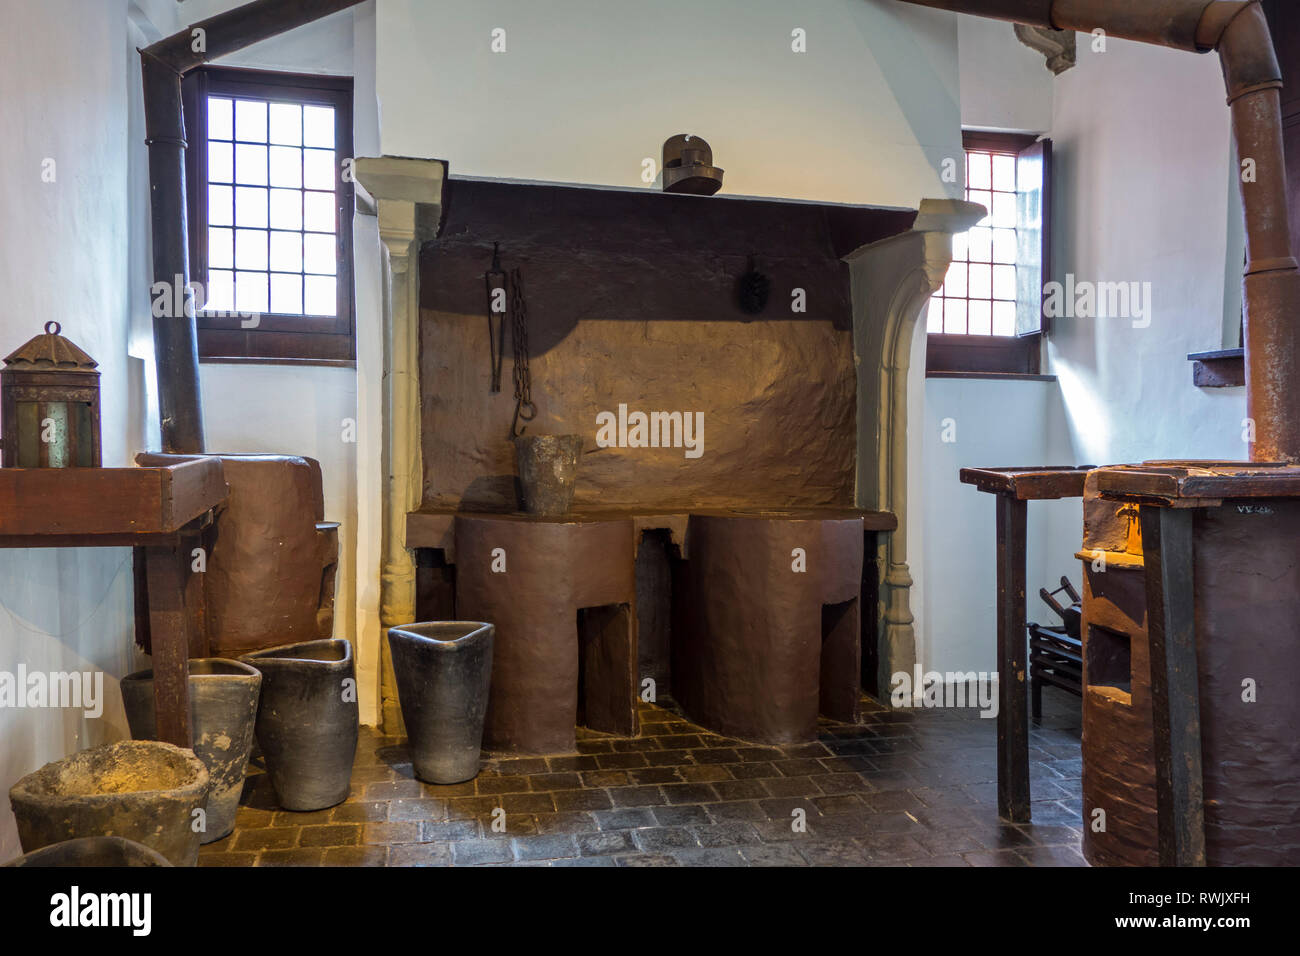 17th century smelter / type foundry in the Plantin-Moretus Museum / Plantin-Moretusmuseum about 16th century printers, Antwerp, Belgium - Stock Image